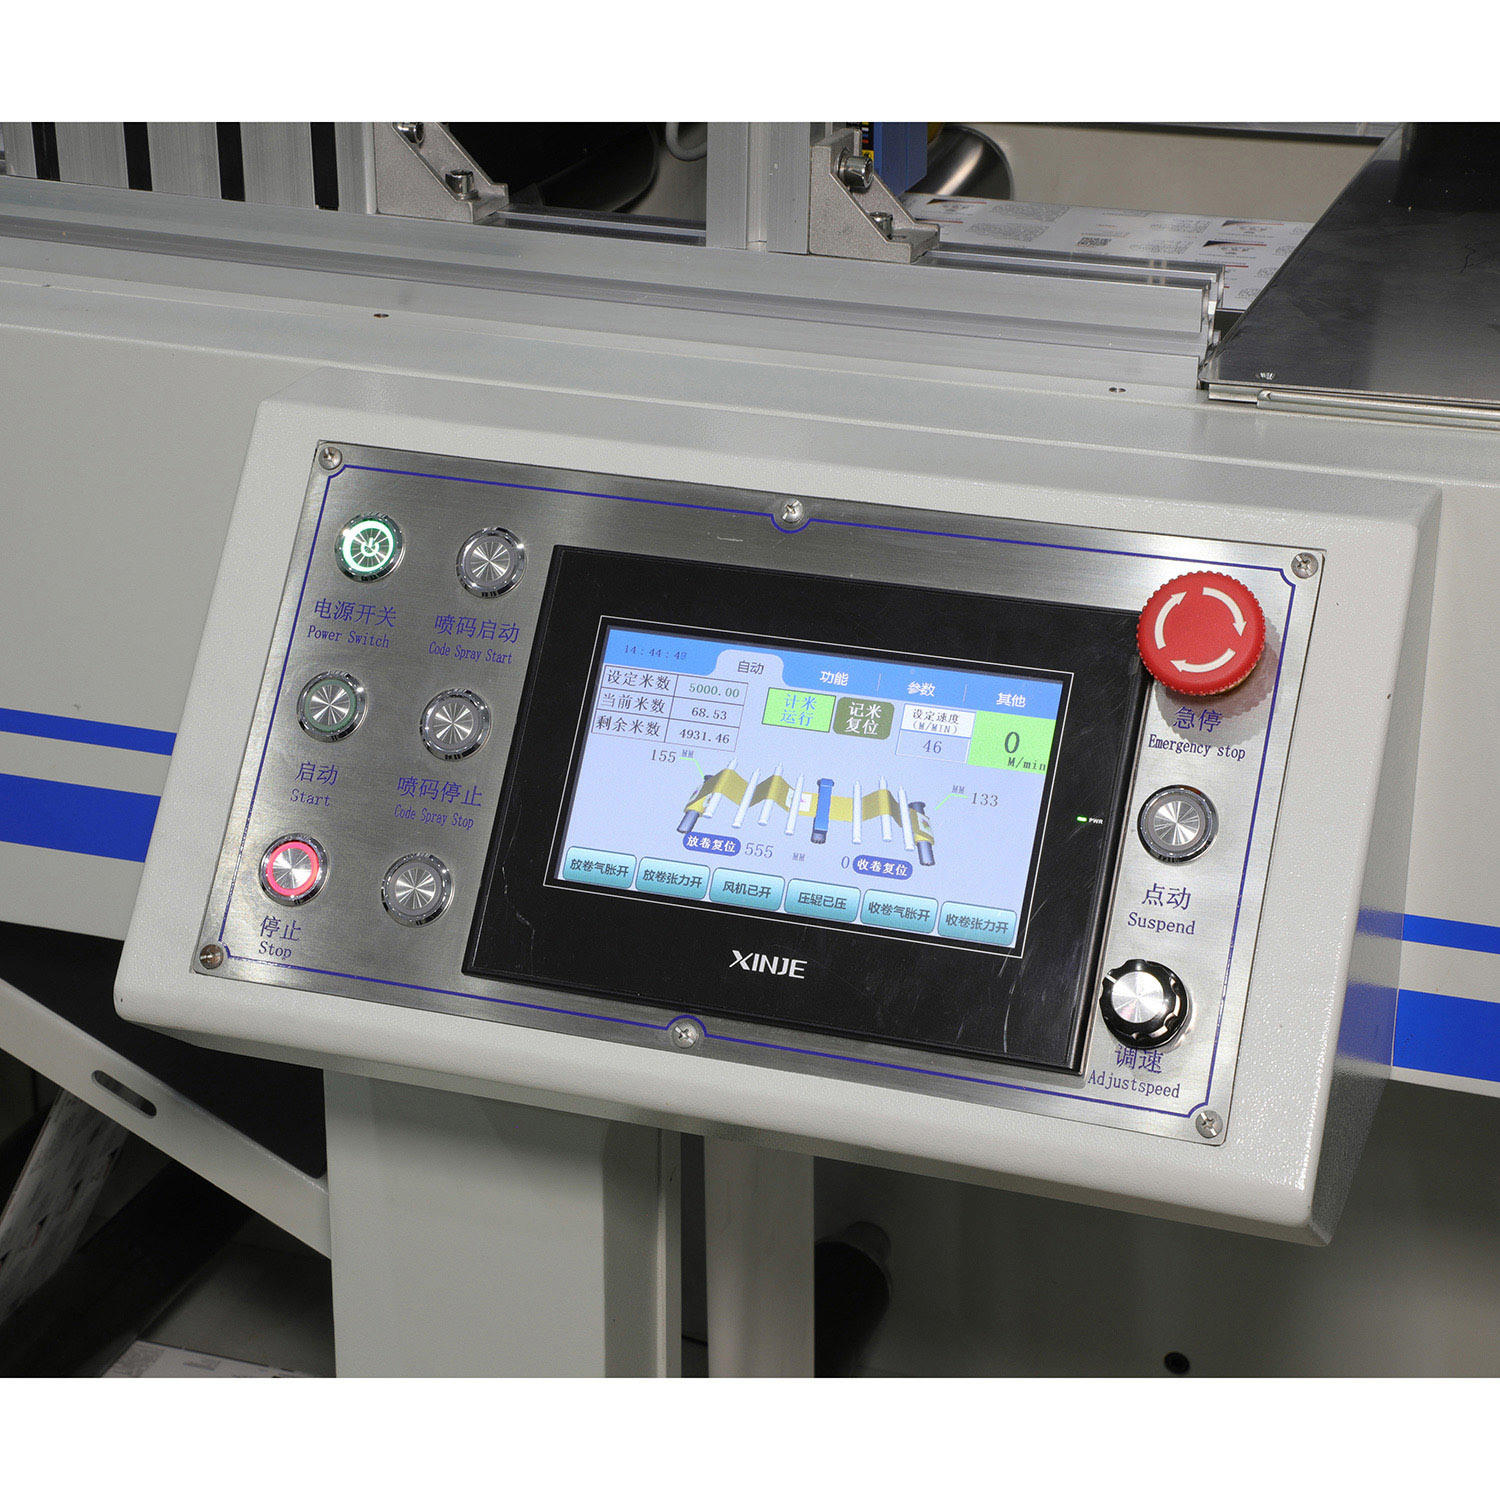 Small Text and Barcodes Qr Code Digital Printing System